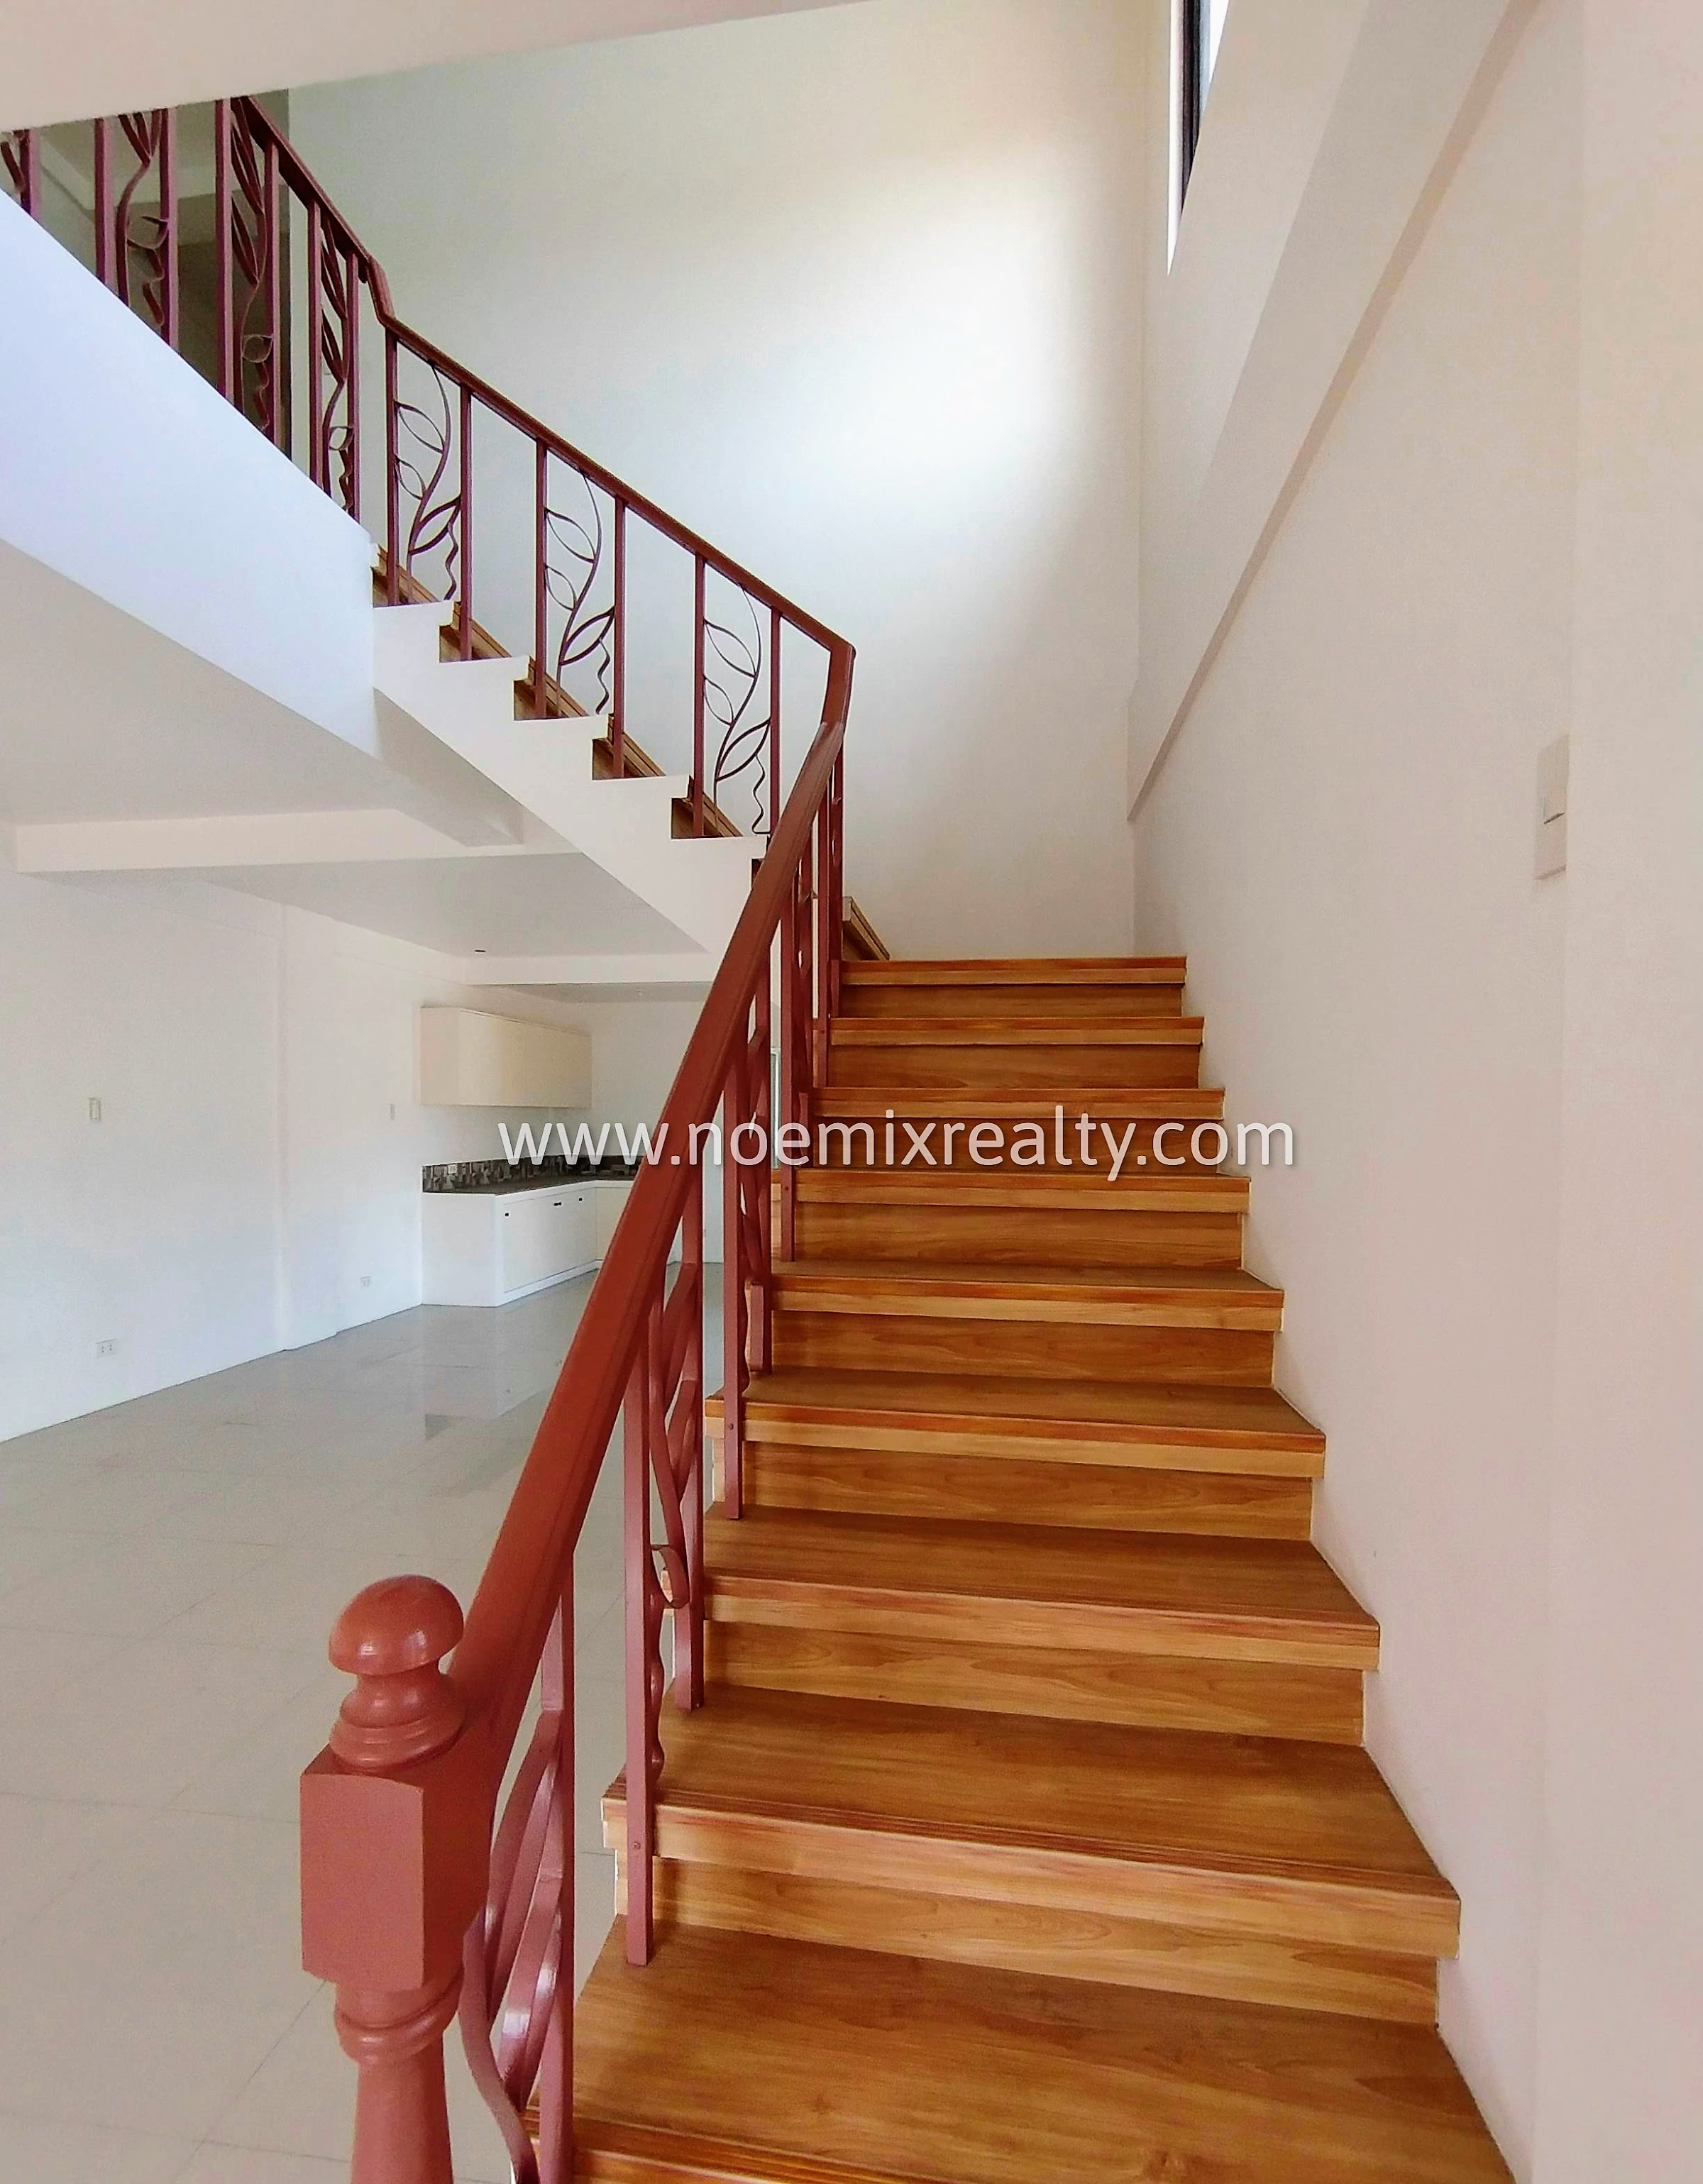 Corner house and lot in Tandang Sora Mindanao Avenue, Quezon City staircase